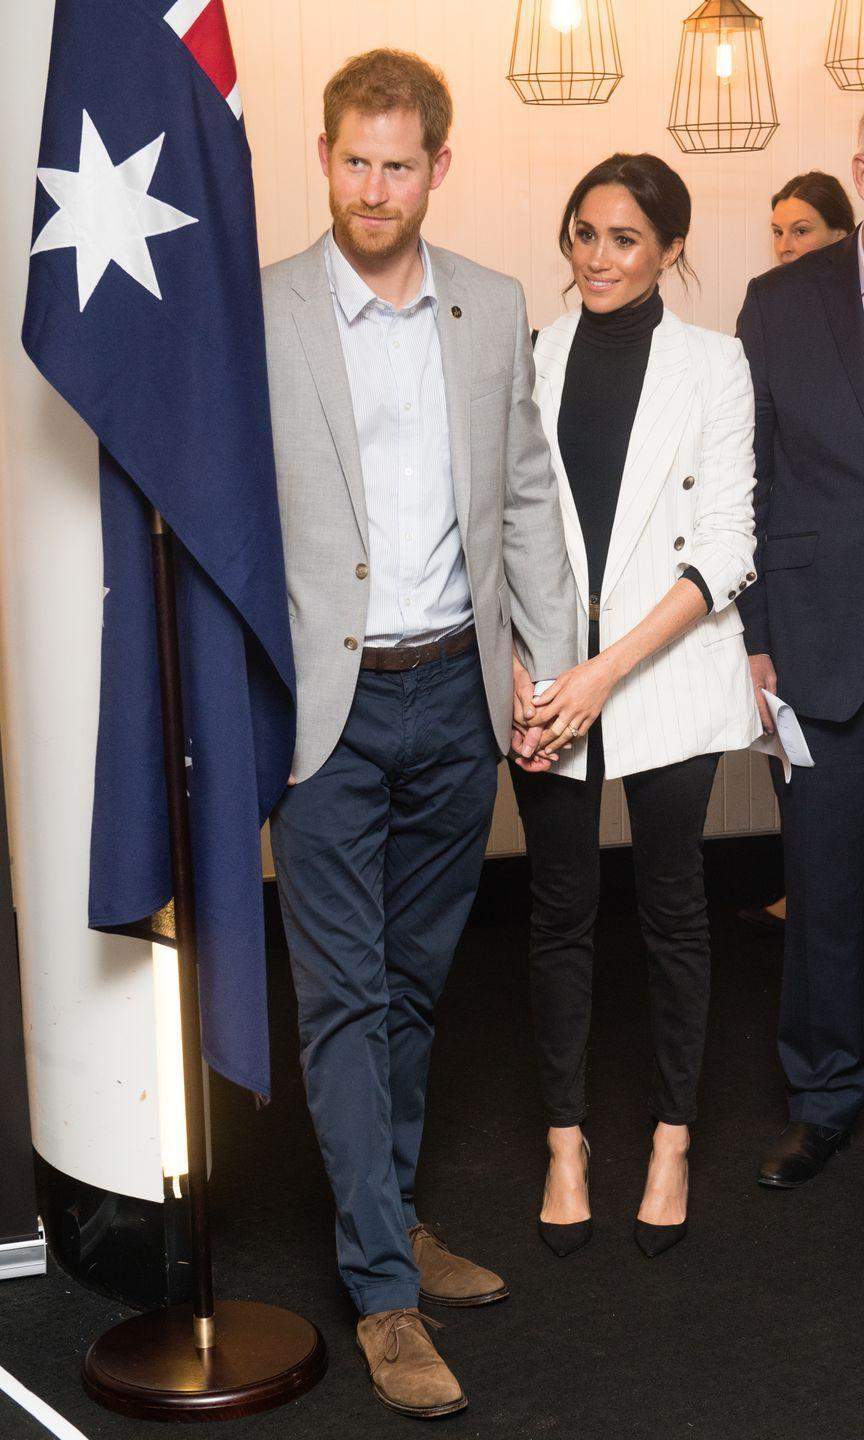 <p>The Duchess can be seen cradling her husband's hands in hers whilst at a lunchtime reception hosted by the Prime Minister of Australia at the Pavilion Restaurant in Sydney.</p>